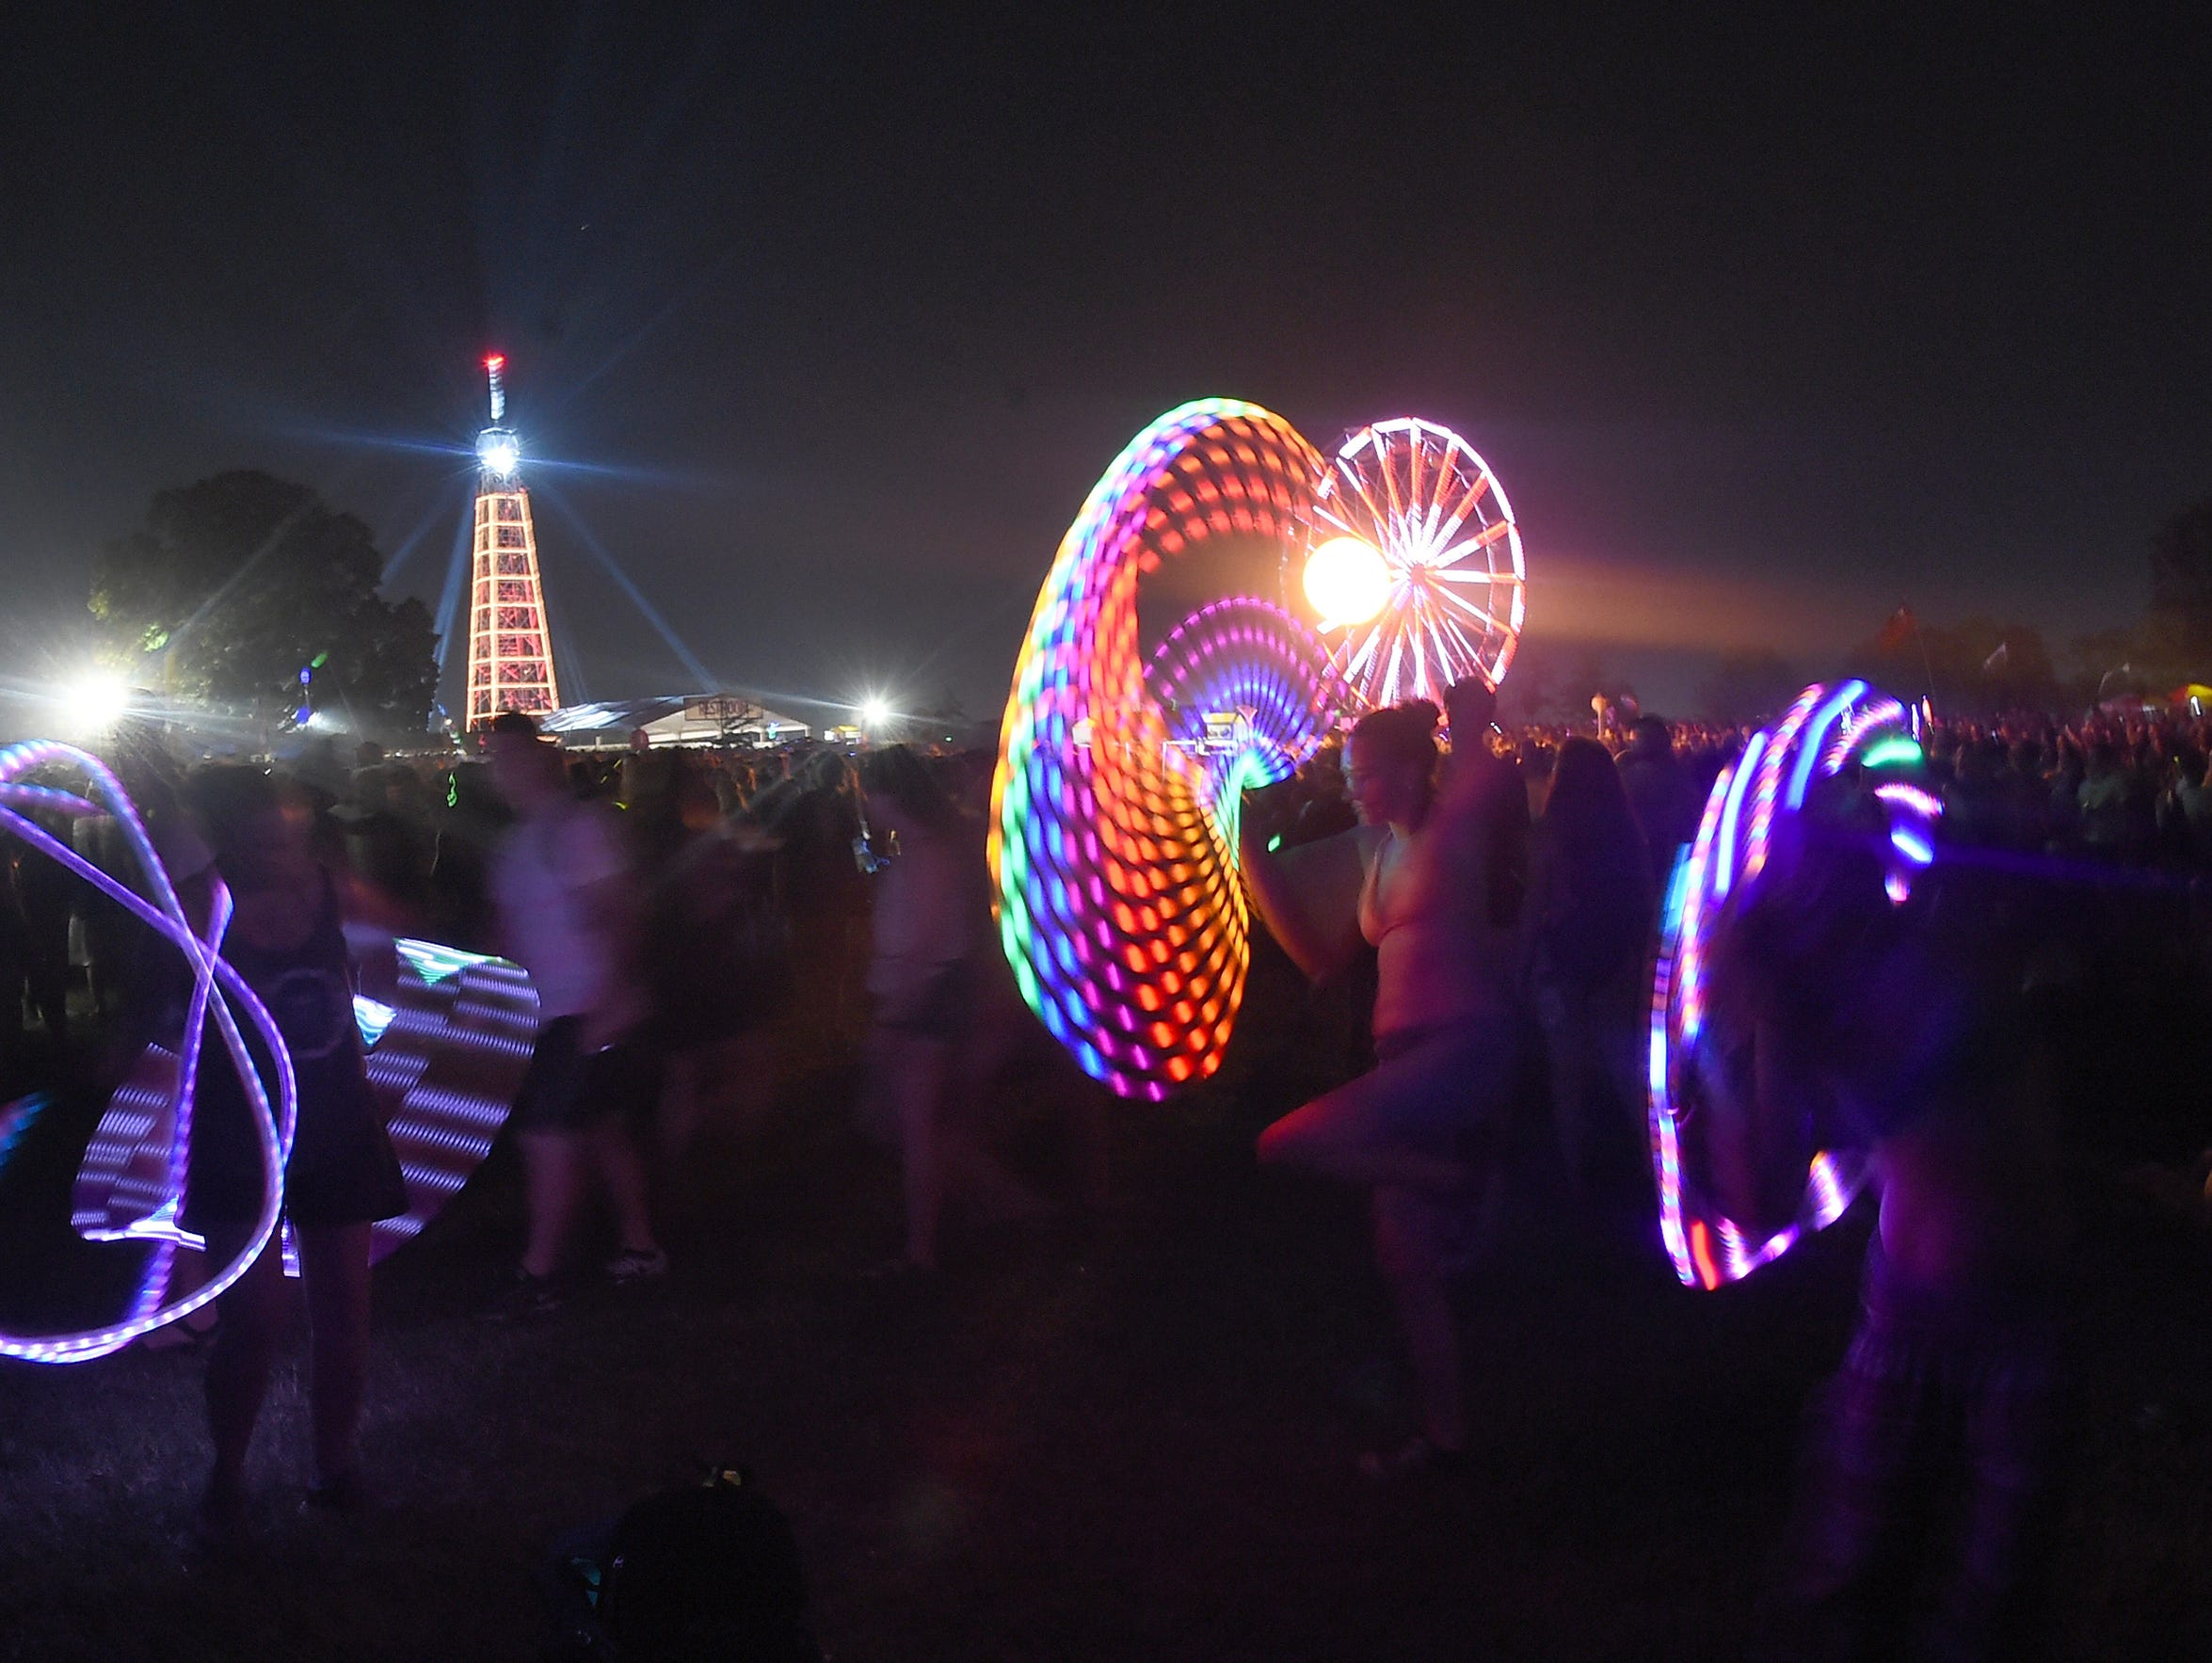 Mancheter, Tenn., plays host to the Bonnaroo Arts and